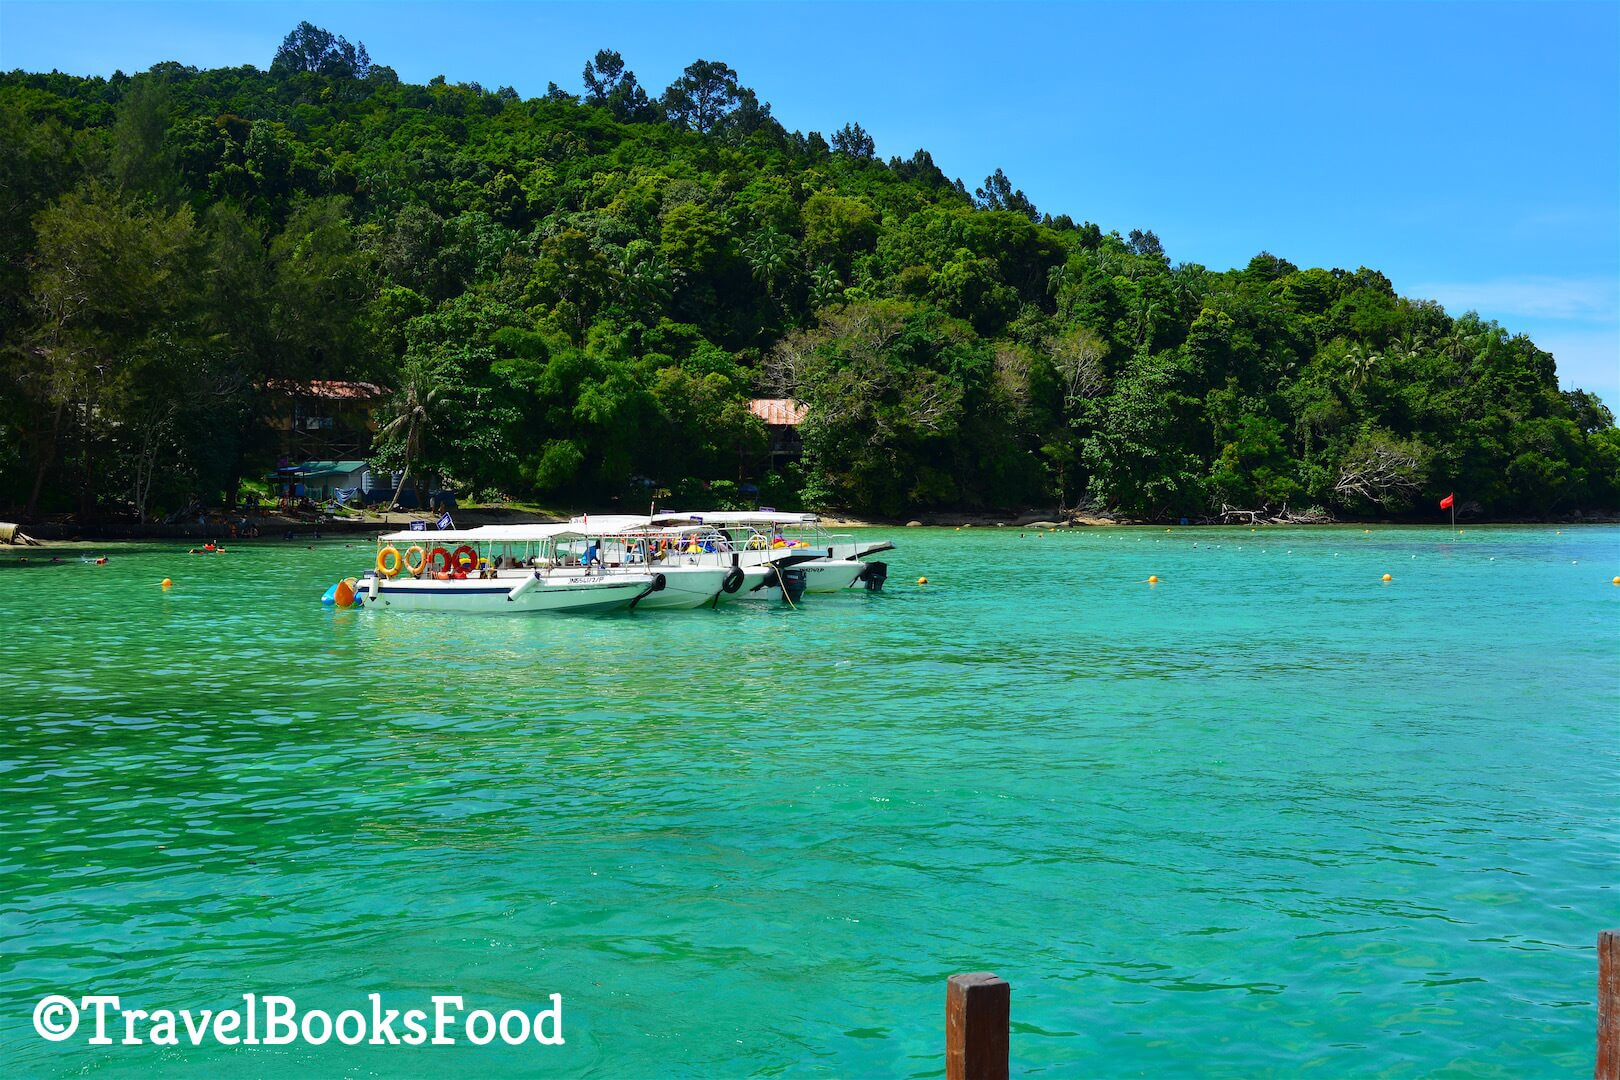 Picture of three white boats surrounded by turquoise blue waters in Sapi Island, Kota Kinabalu, Malaysia